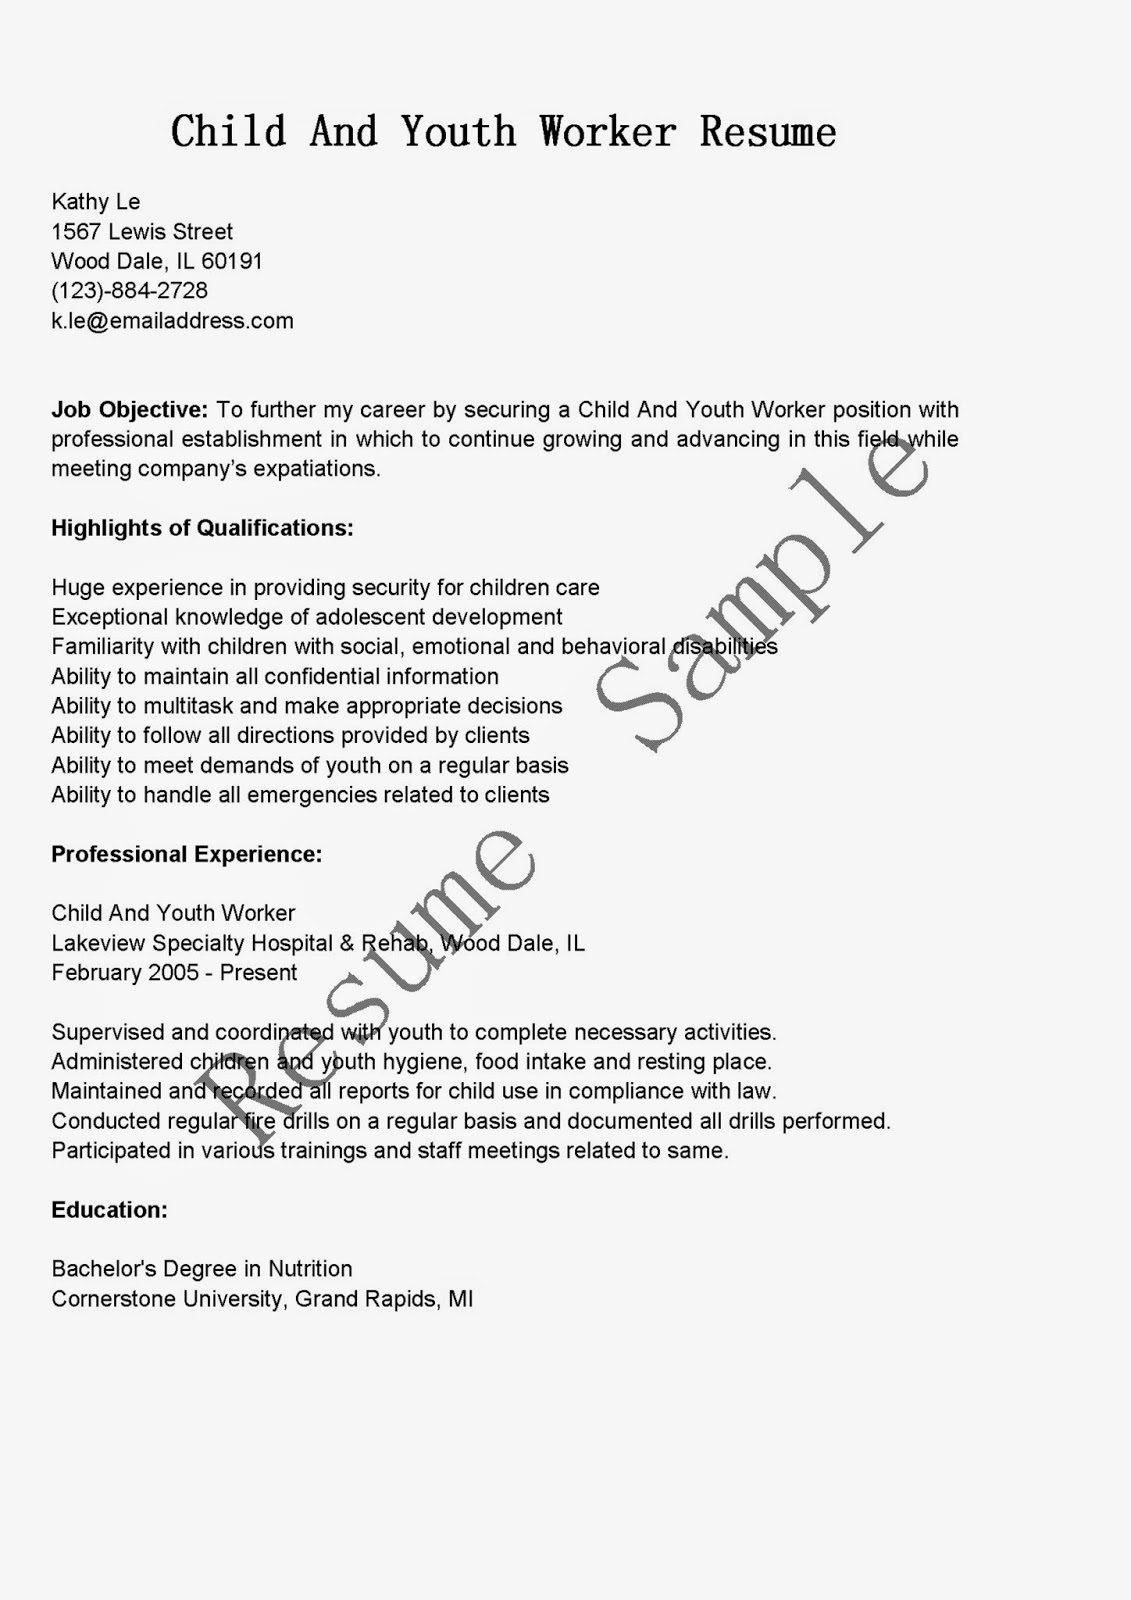 Buy Essay Online UK Buy Reliable Essays Online At Cheap Prices  Child%2BAnd%2BYouth%2BWorker%2BResume 25904. Child And Youth Worker Cover  Letter  Daycare Worker Resume